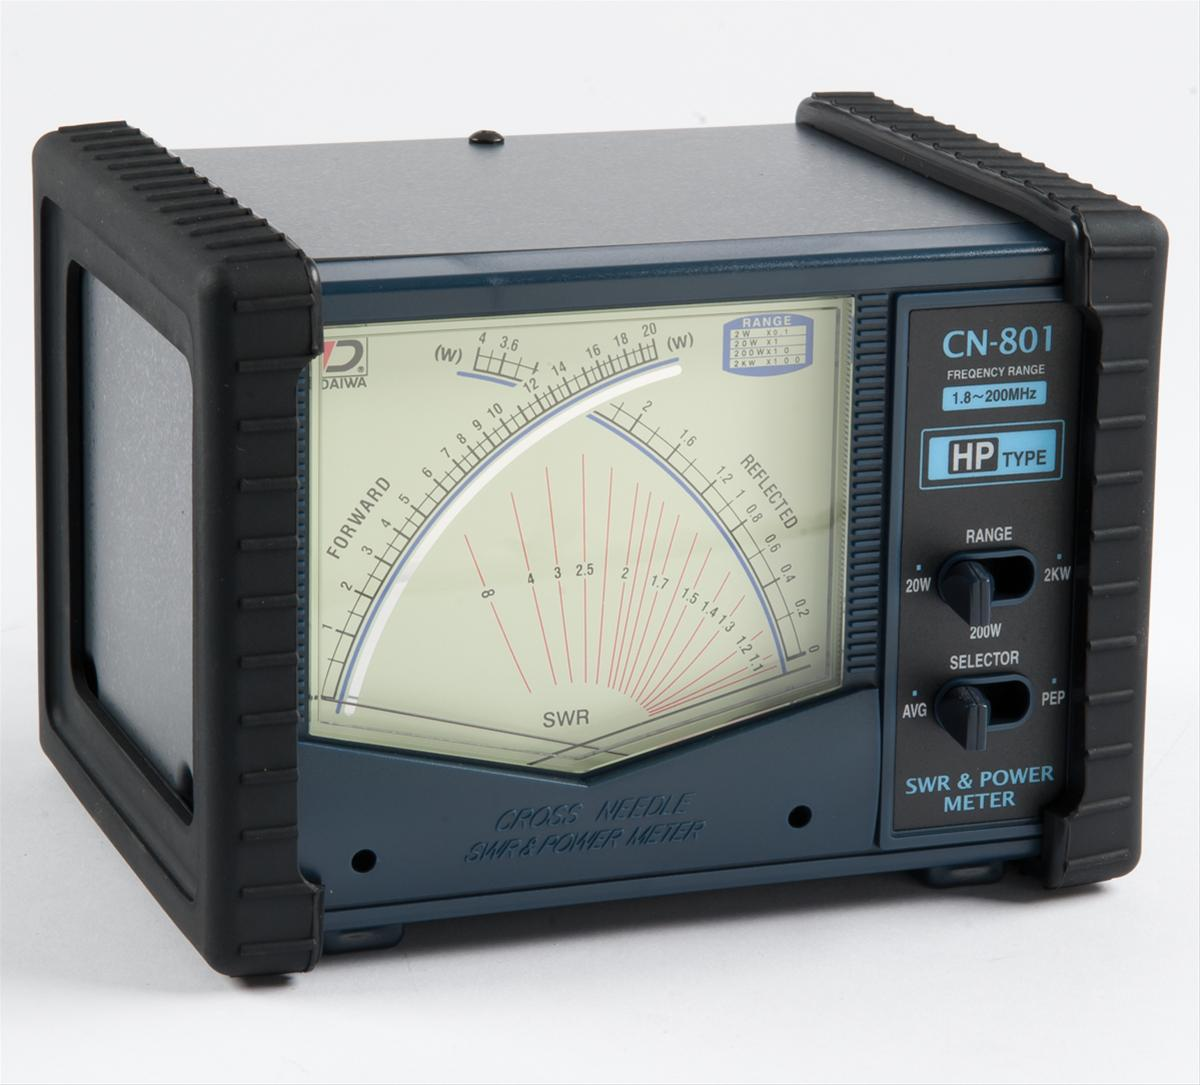 Daiwa Cn 801 Professional Series Bench Meters 801hp Free Schematic Diagram Download Wiring Shipping On Most Orders Over 99 At Dx Engineering